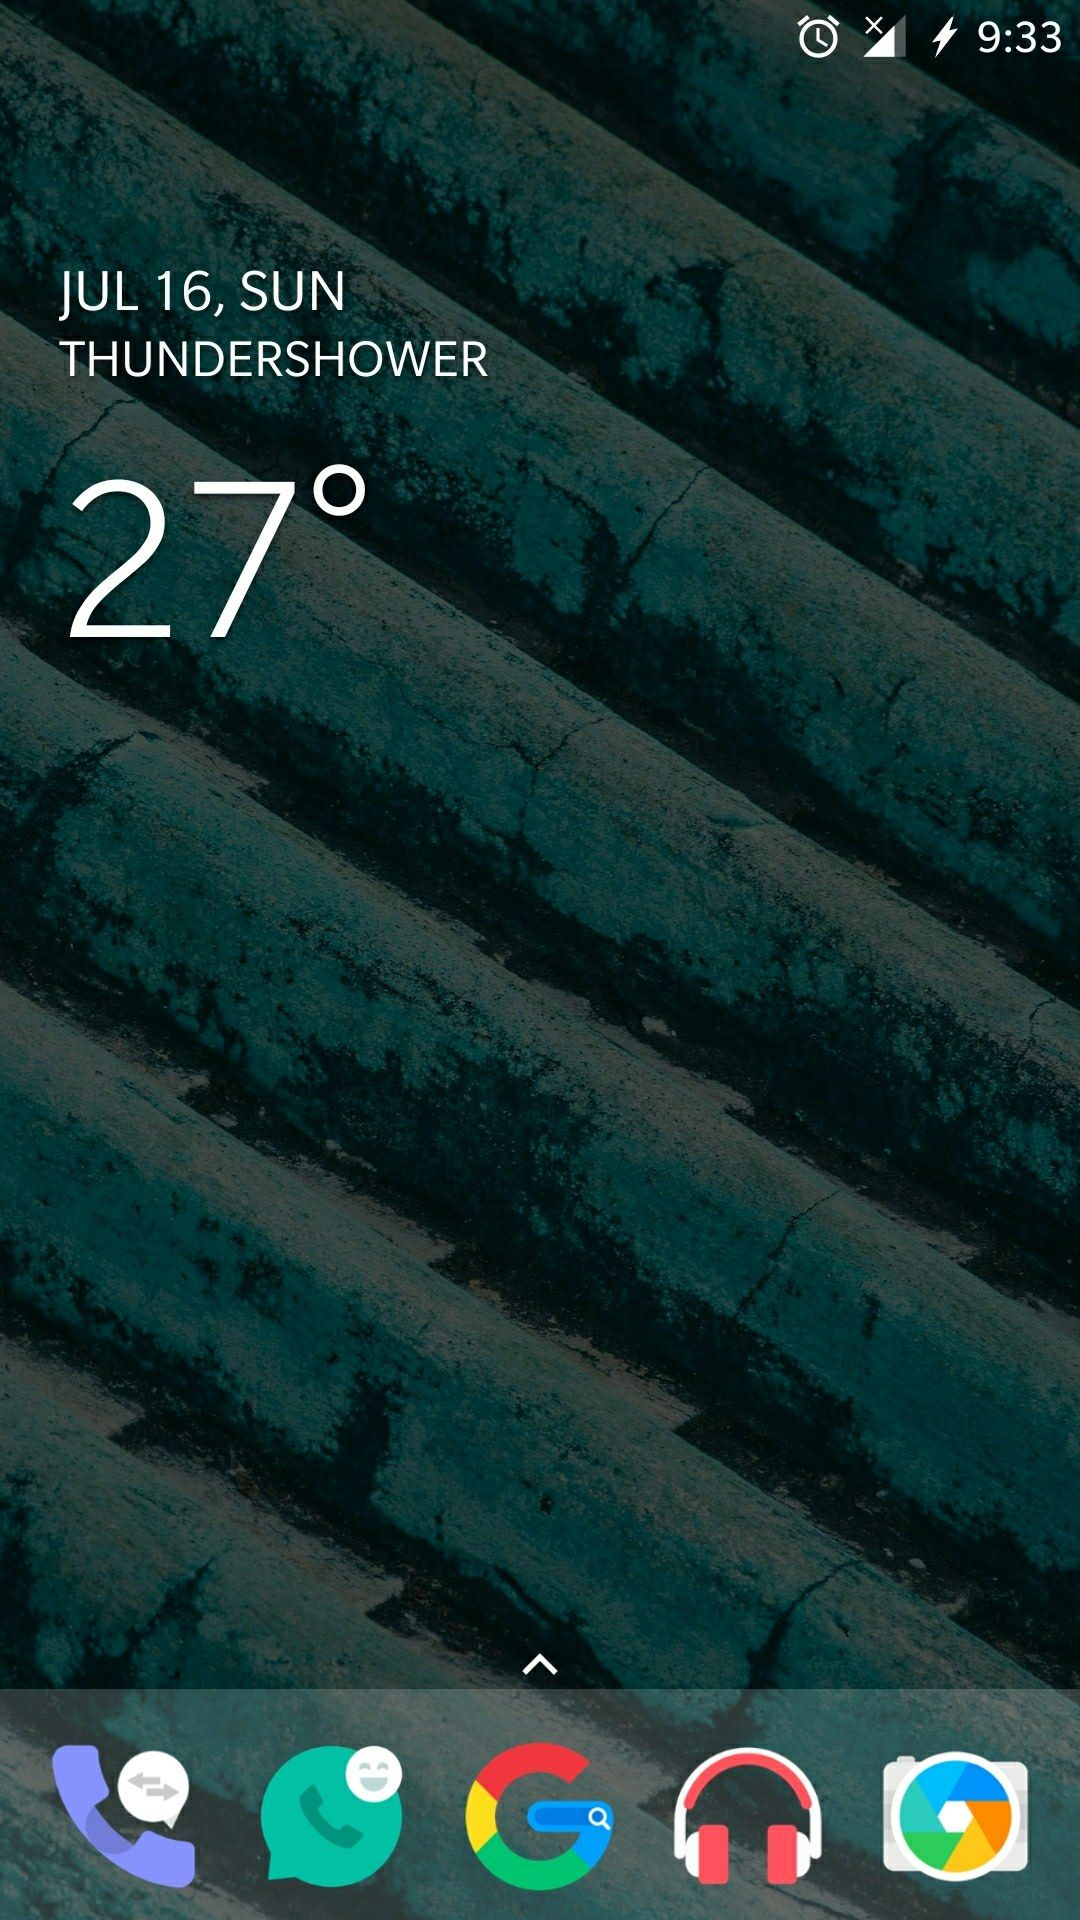 OnePlus 3/3T - Share Your Home Screen Thread !! | Page 211 - OnePlus